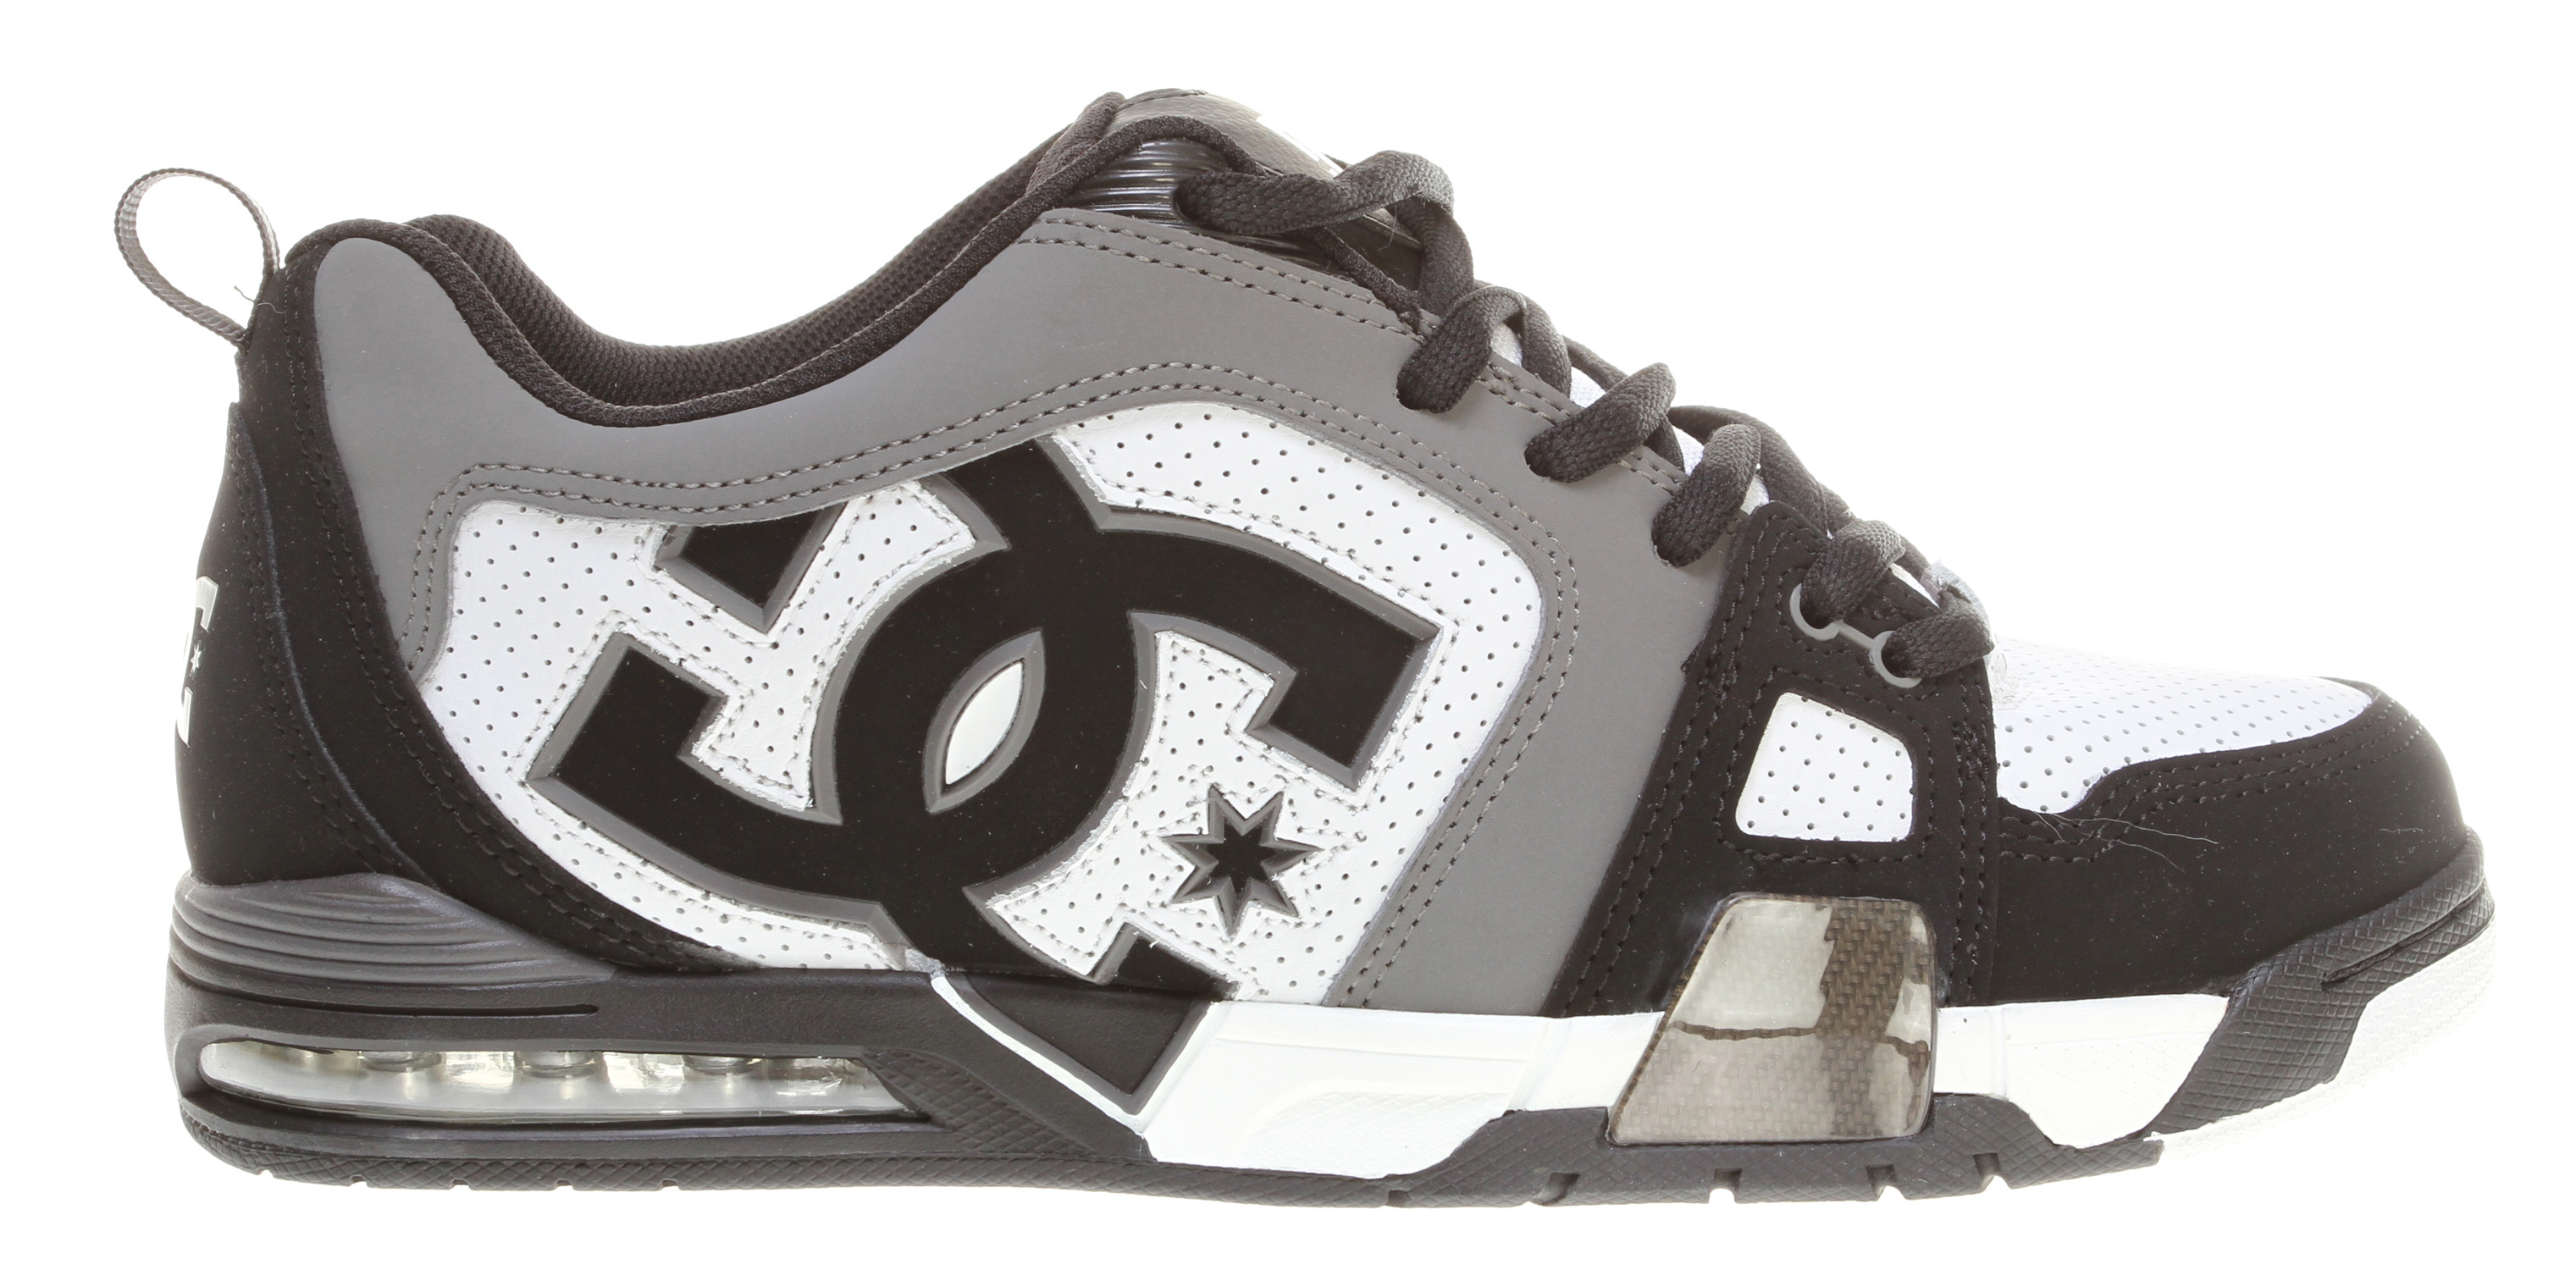 Skateboard Key Features of the DC Frenzy Skate Shoes: Soft Resilient Action Leather Perforated Upper Panel Hidden Nylon Lace Loop TPU Eyelets Foam-Padded Tongue and Collar Lightweight Mesh Tongue Spandex Tongue Holders DC's Performance Wrap Cup Sole Mid-Length Airbag Performalite - $61.95